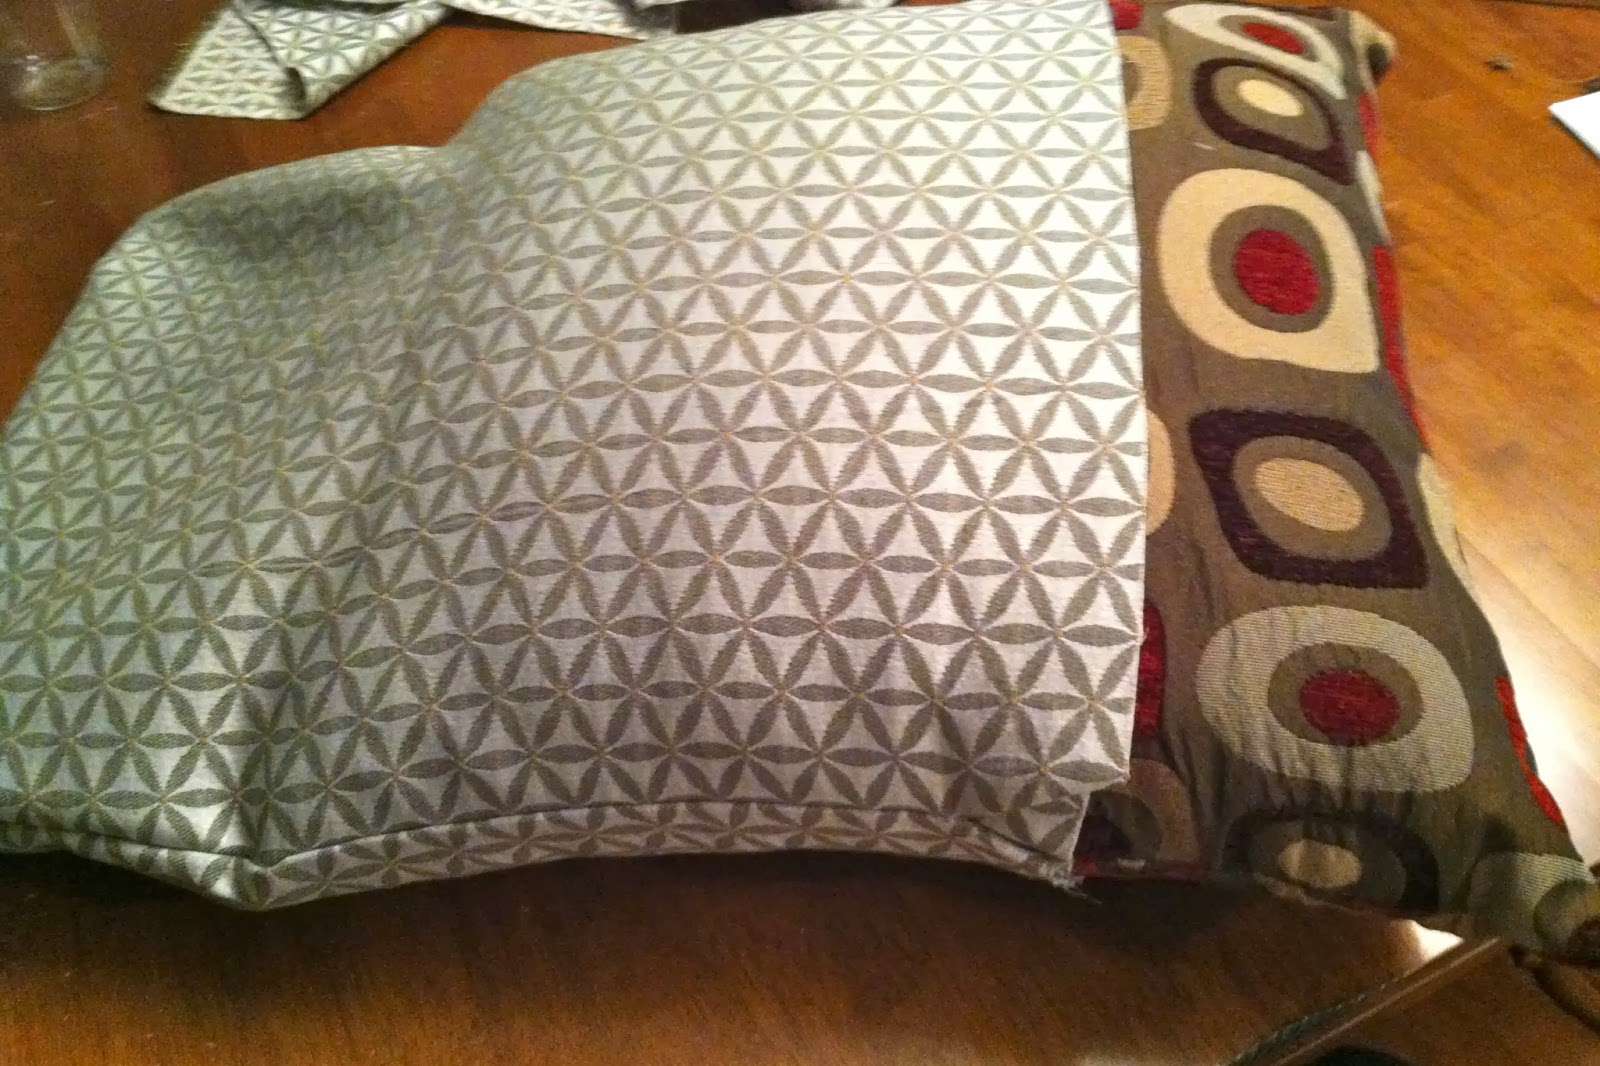 No sew pillow covers using hot glue & DIY Why Spend More: No sew pillow covers using hot glue pillowsntoast.com